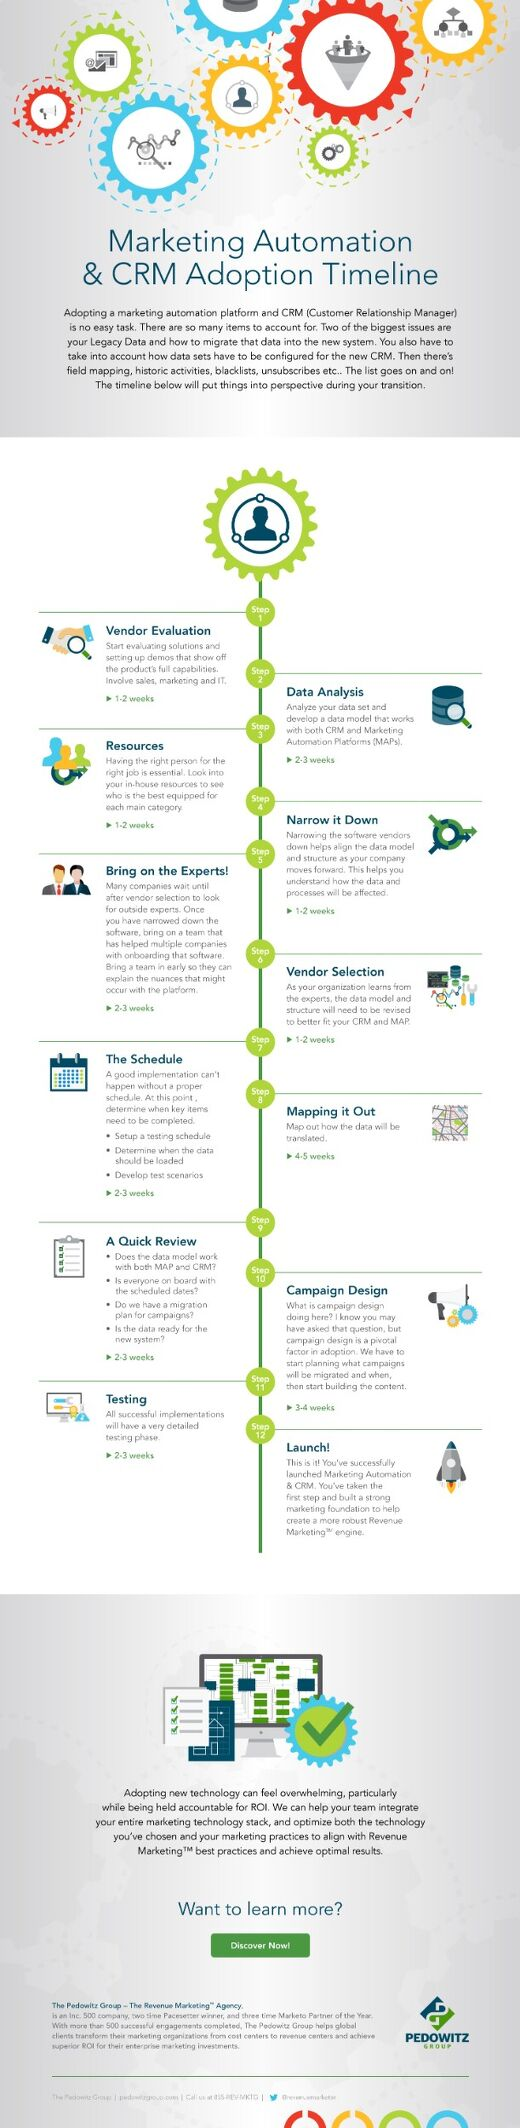 Marketing Automation and CRM Adoption Timeline